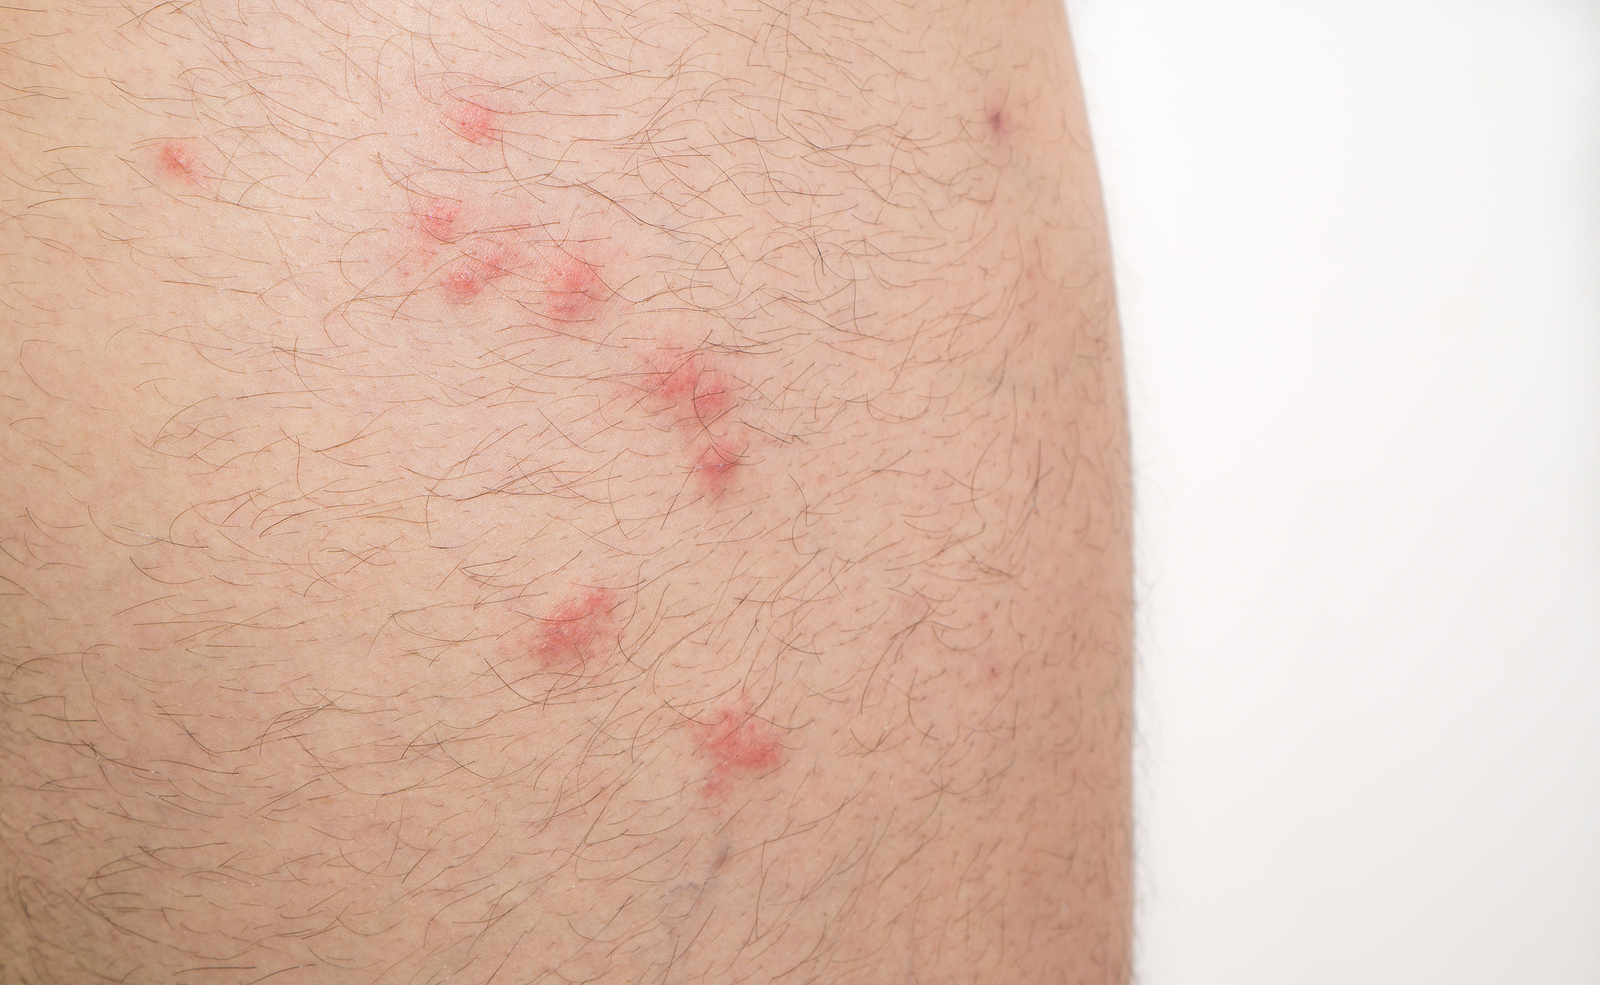 Mosquito, Spider, and Bed Bug Bite Similarities and Differences